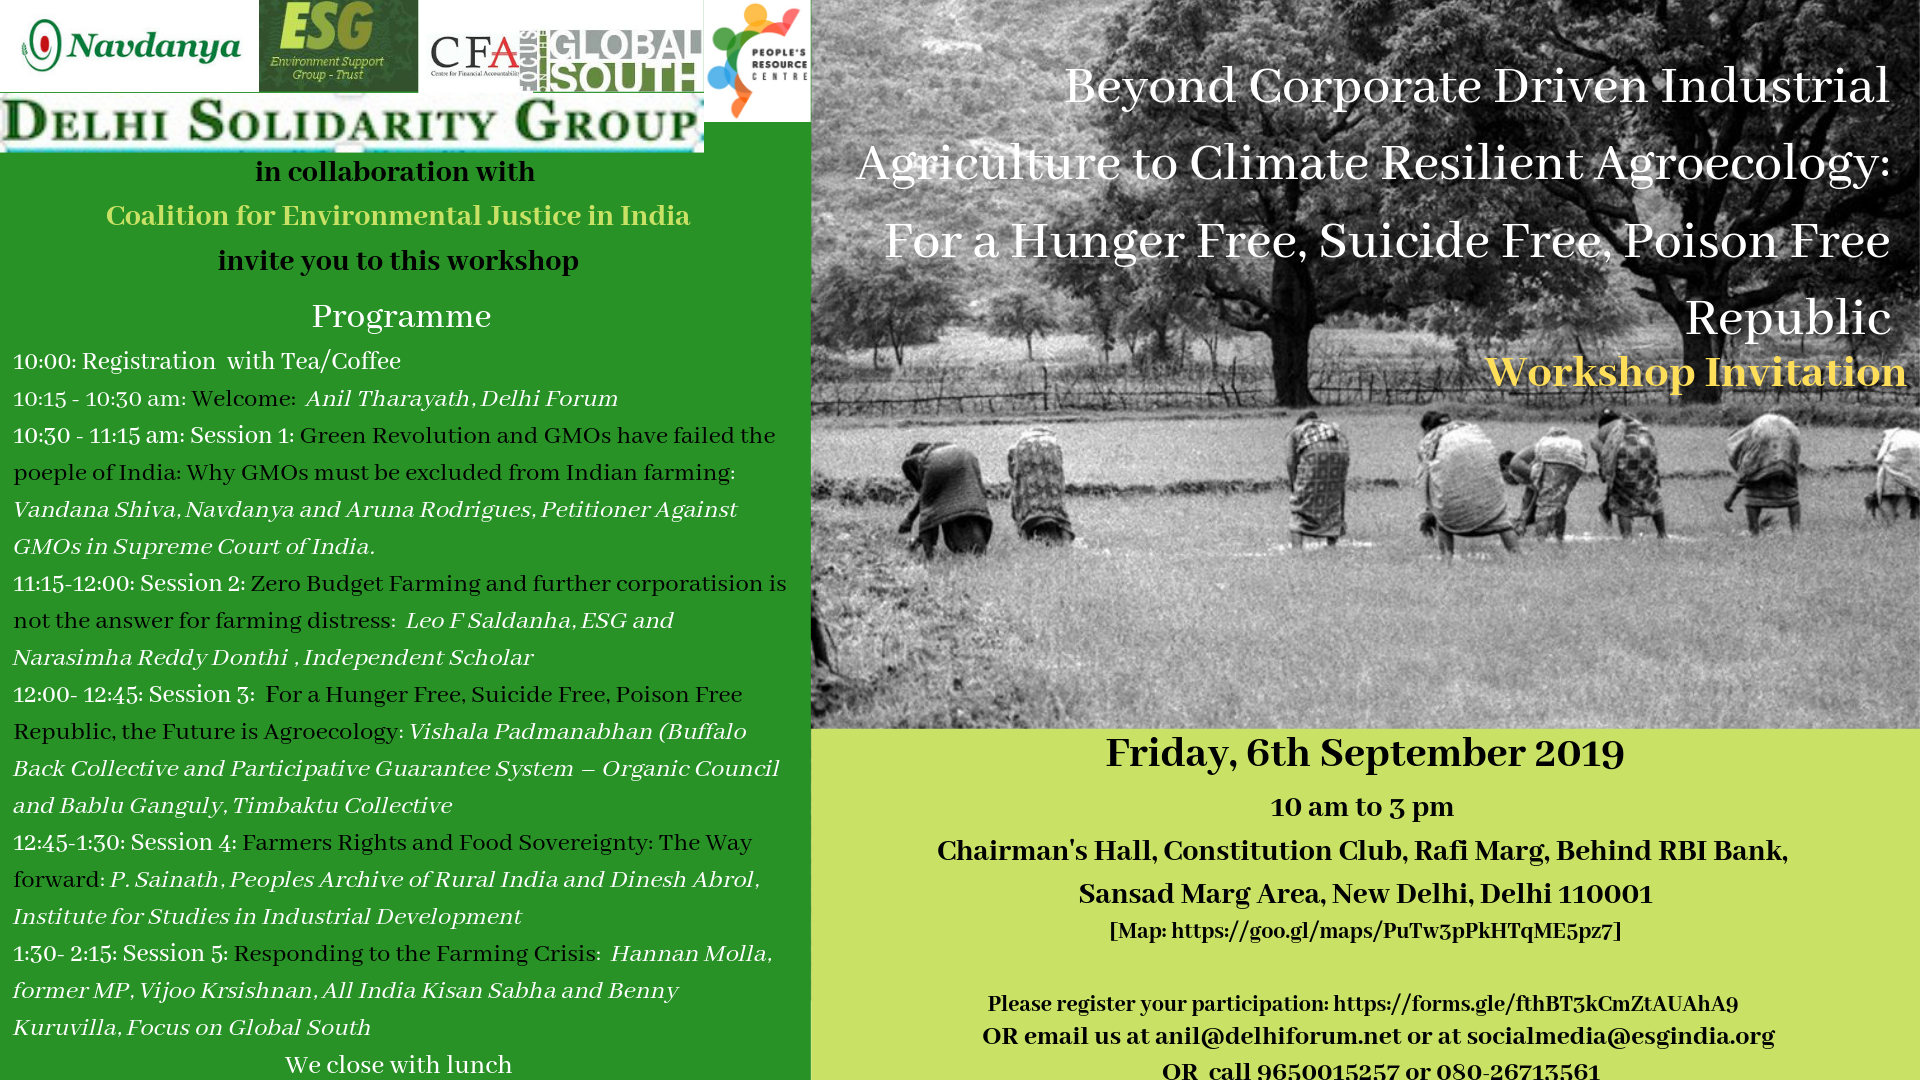 Beyond Corporate Driven Industrial Agriculture to Climate Resilient Agroecology: For a Hunger Free, Suicide Free, Poison Free Republic